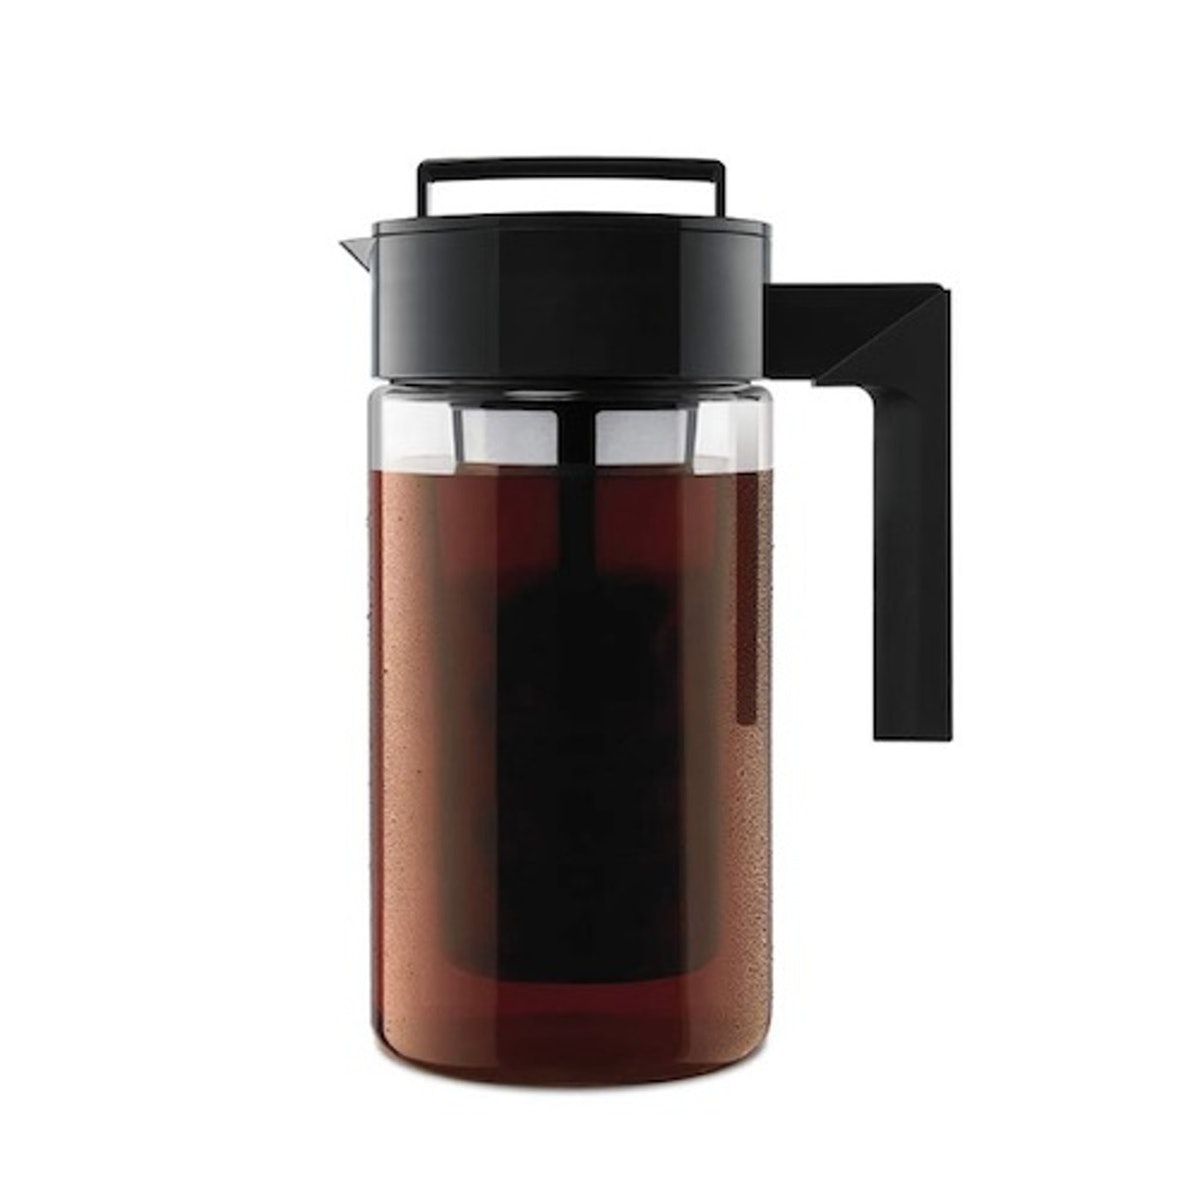 Takeya 10310 Patented Deluxe Cold Brew Iced Coffee Maker with Airtight Lid & Silicone Handle